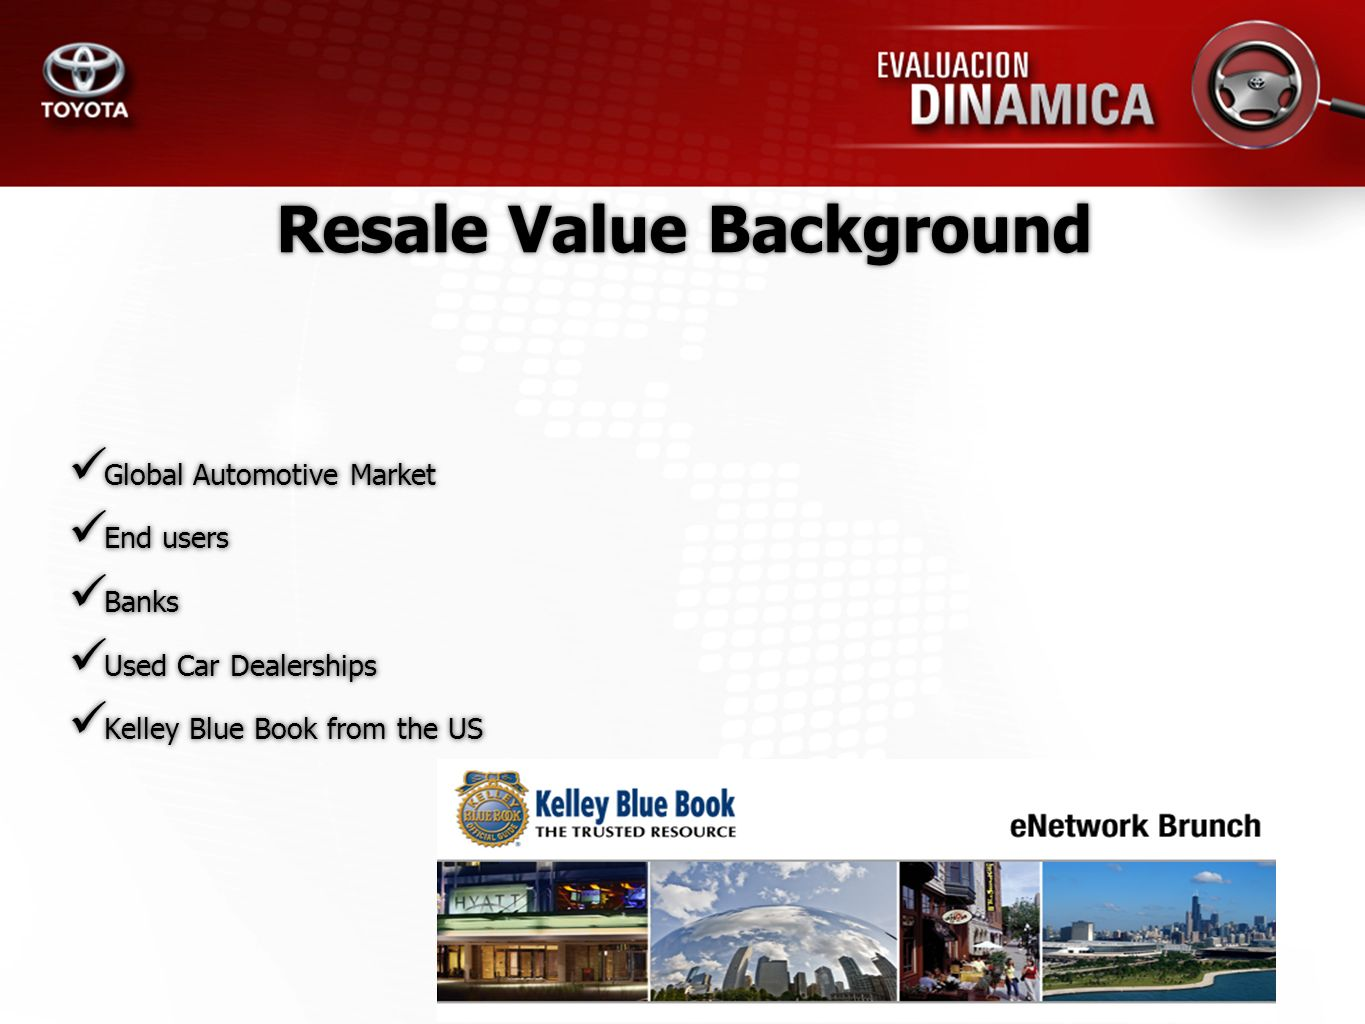 Obtain a percentage of resale value for the highest selling brands on the country, through a Buy/Sell Table Research, weigh and compare purchase drivers Offer interesting facts from the salesmans, customers and middle mans perspective.